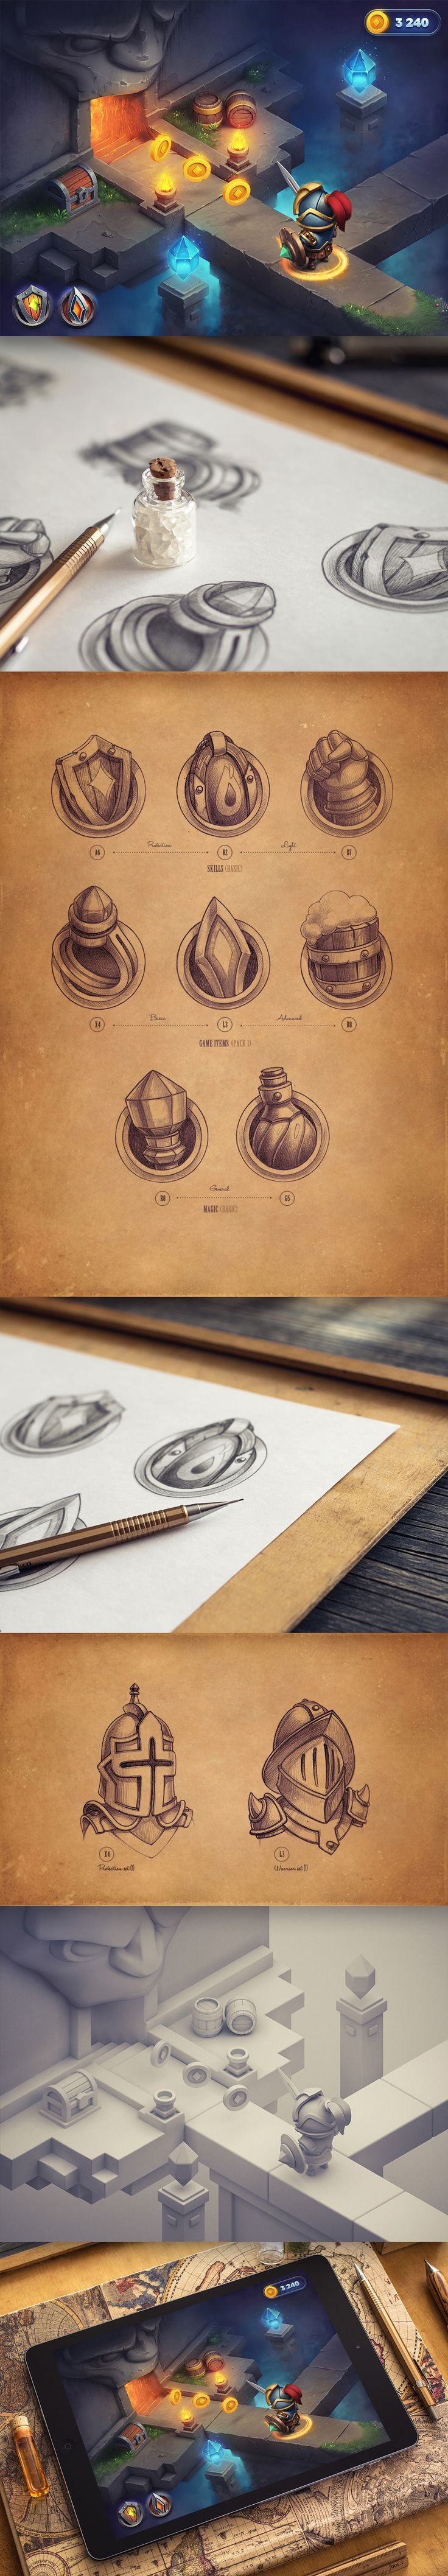 Dribbble - rpg_game_-_ios_art.jpg by Mike | Creative Mints